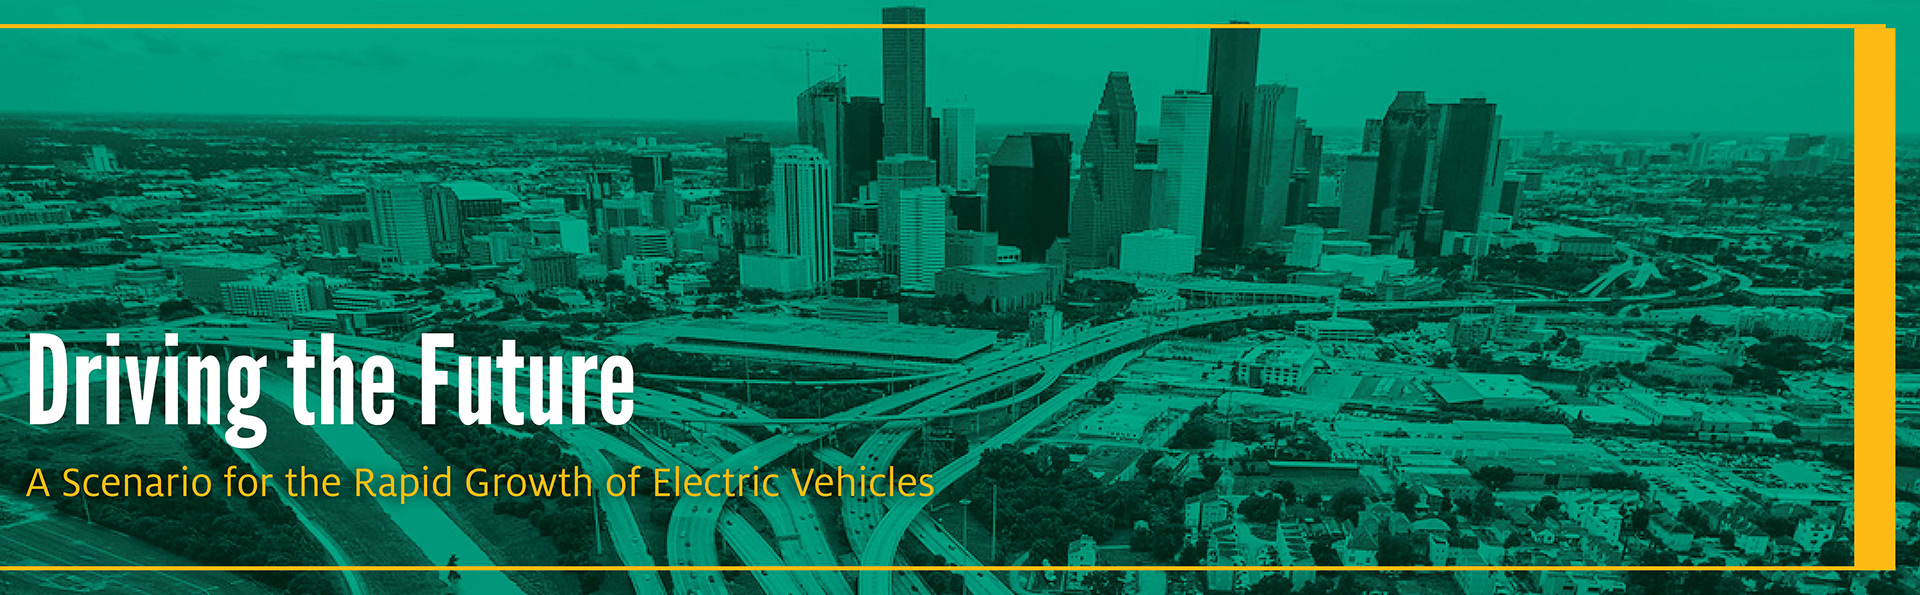 Driving the Future: A Scenario for the Rapid Growth of Electric Vehicles